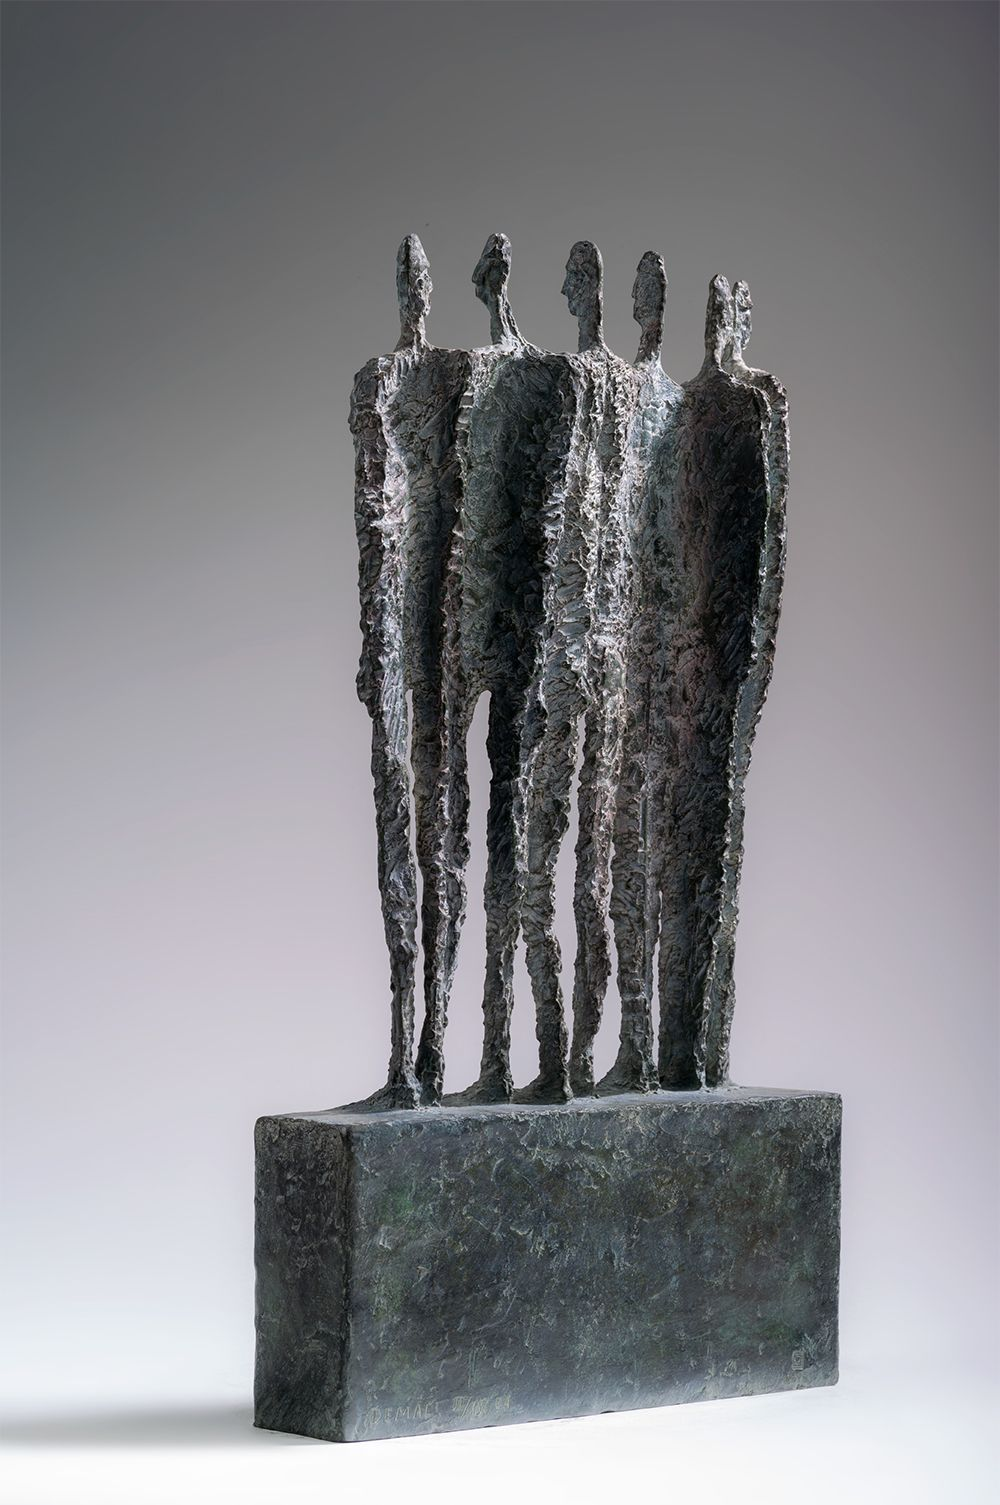 The Group, Primary Forms series,Martine Demal,Sculpture, detail 2